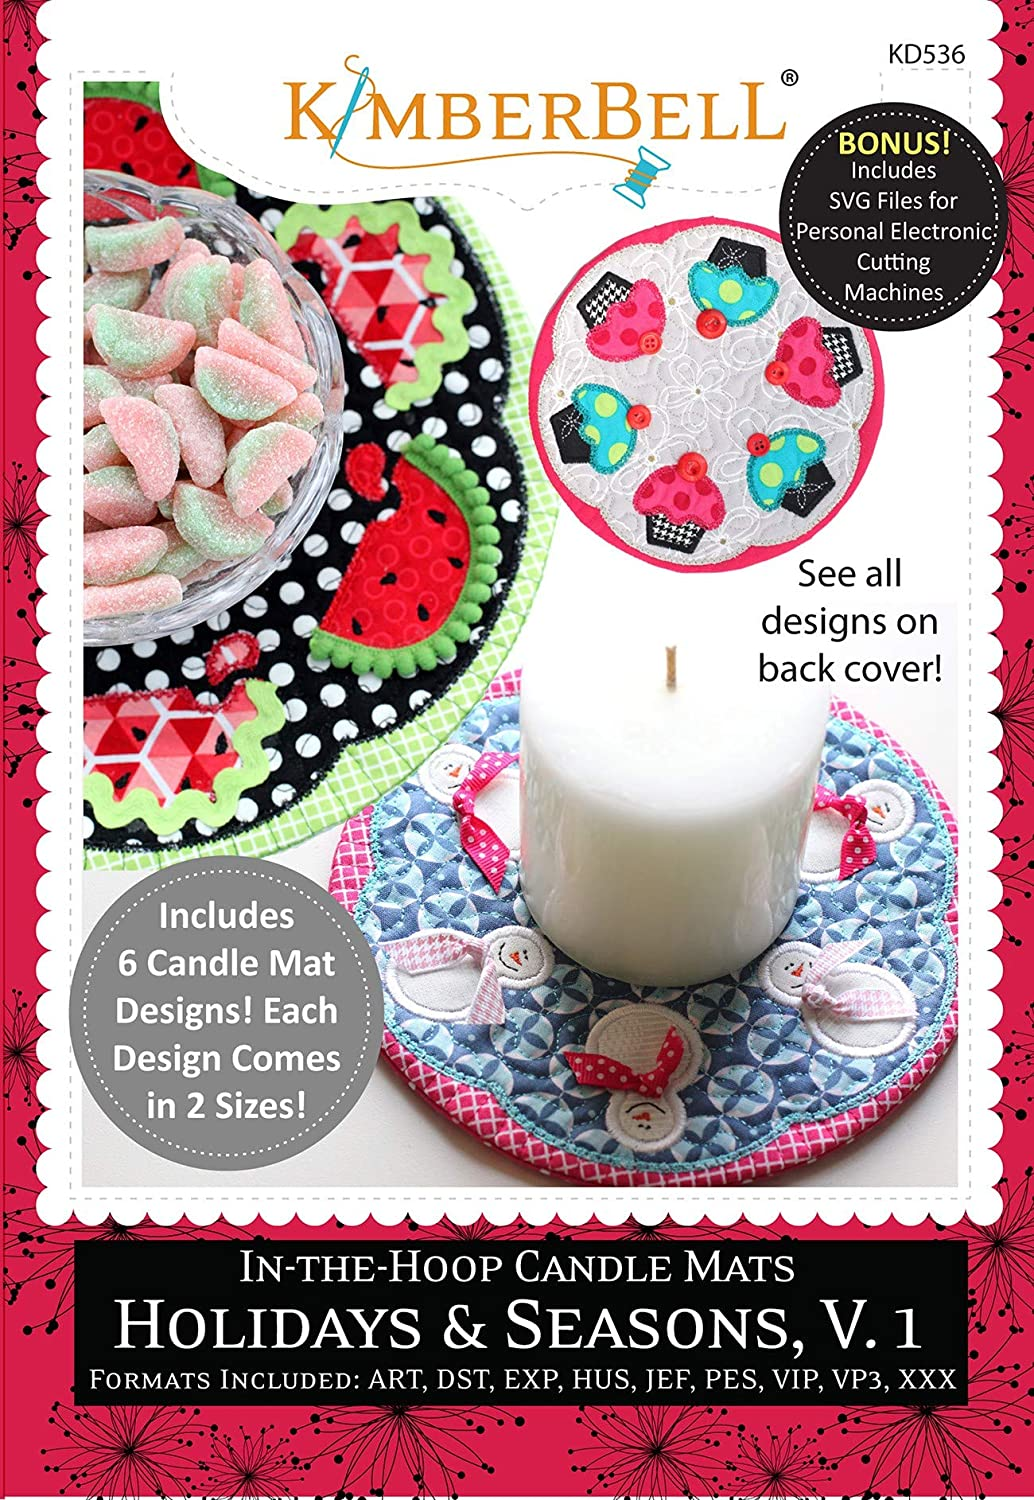 KimberBell - in-The-Hoop Candle Mats: Holidays & Seasons, Volume 1 Machine Embroidery CD